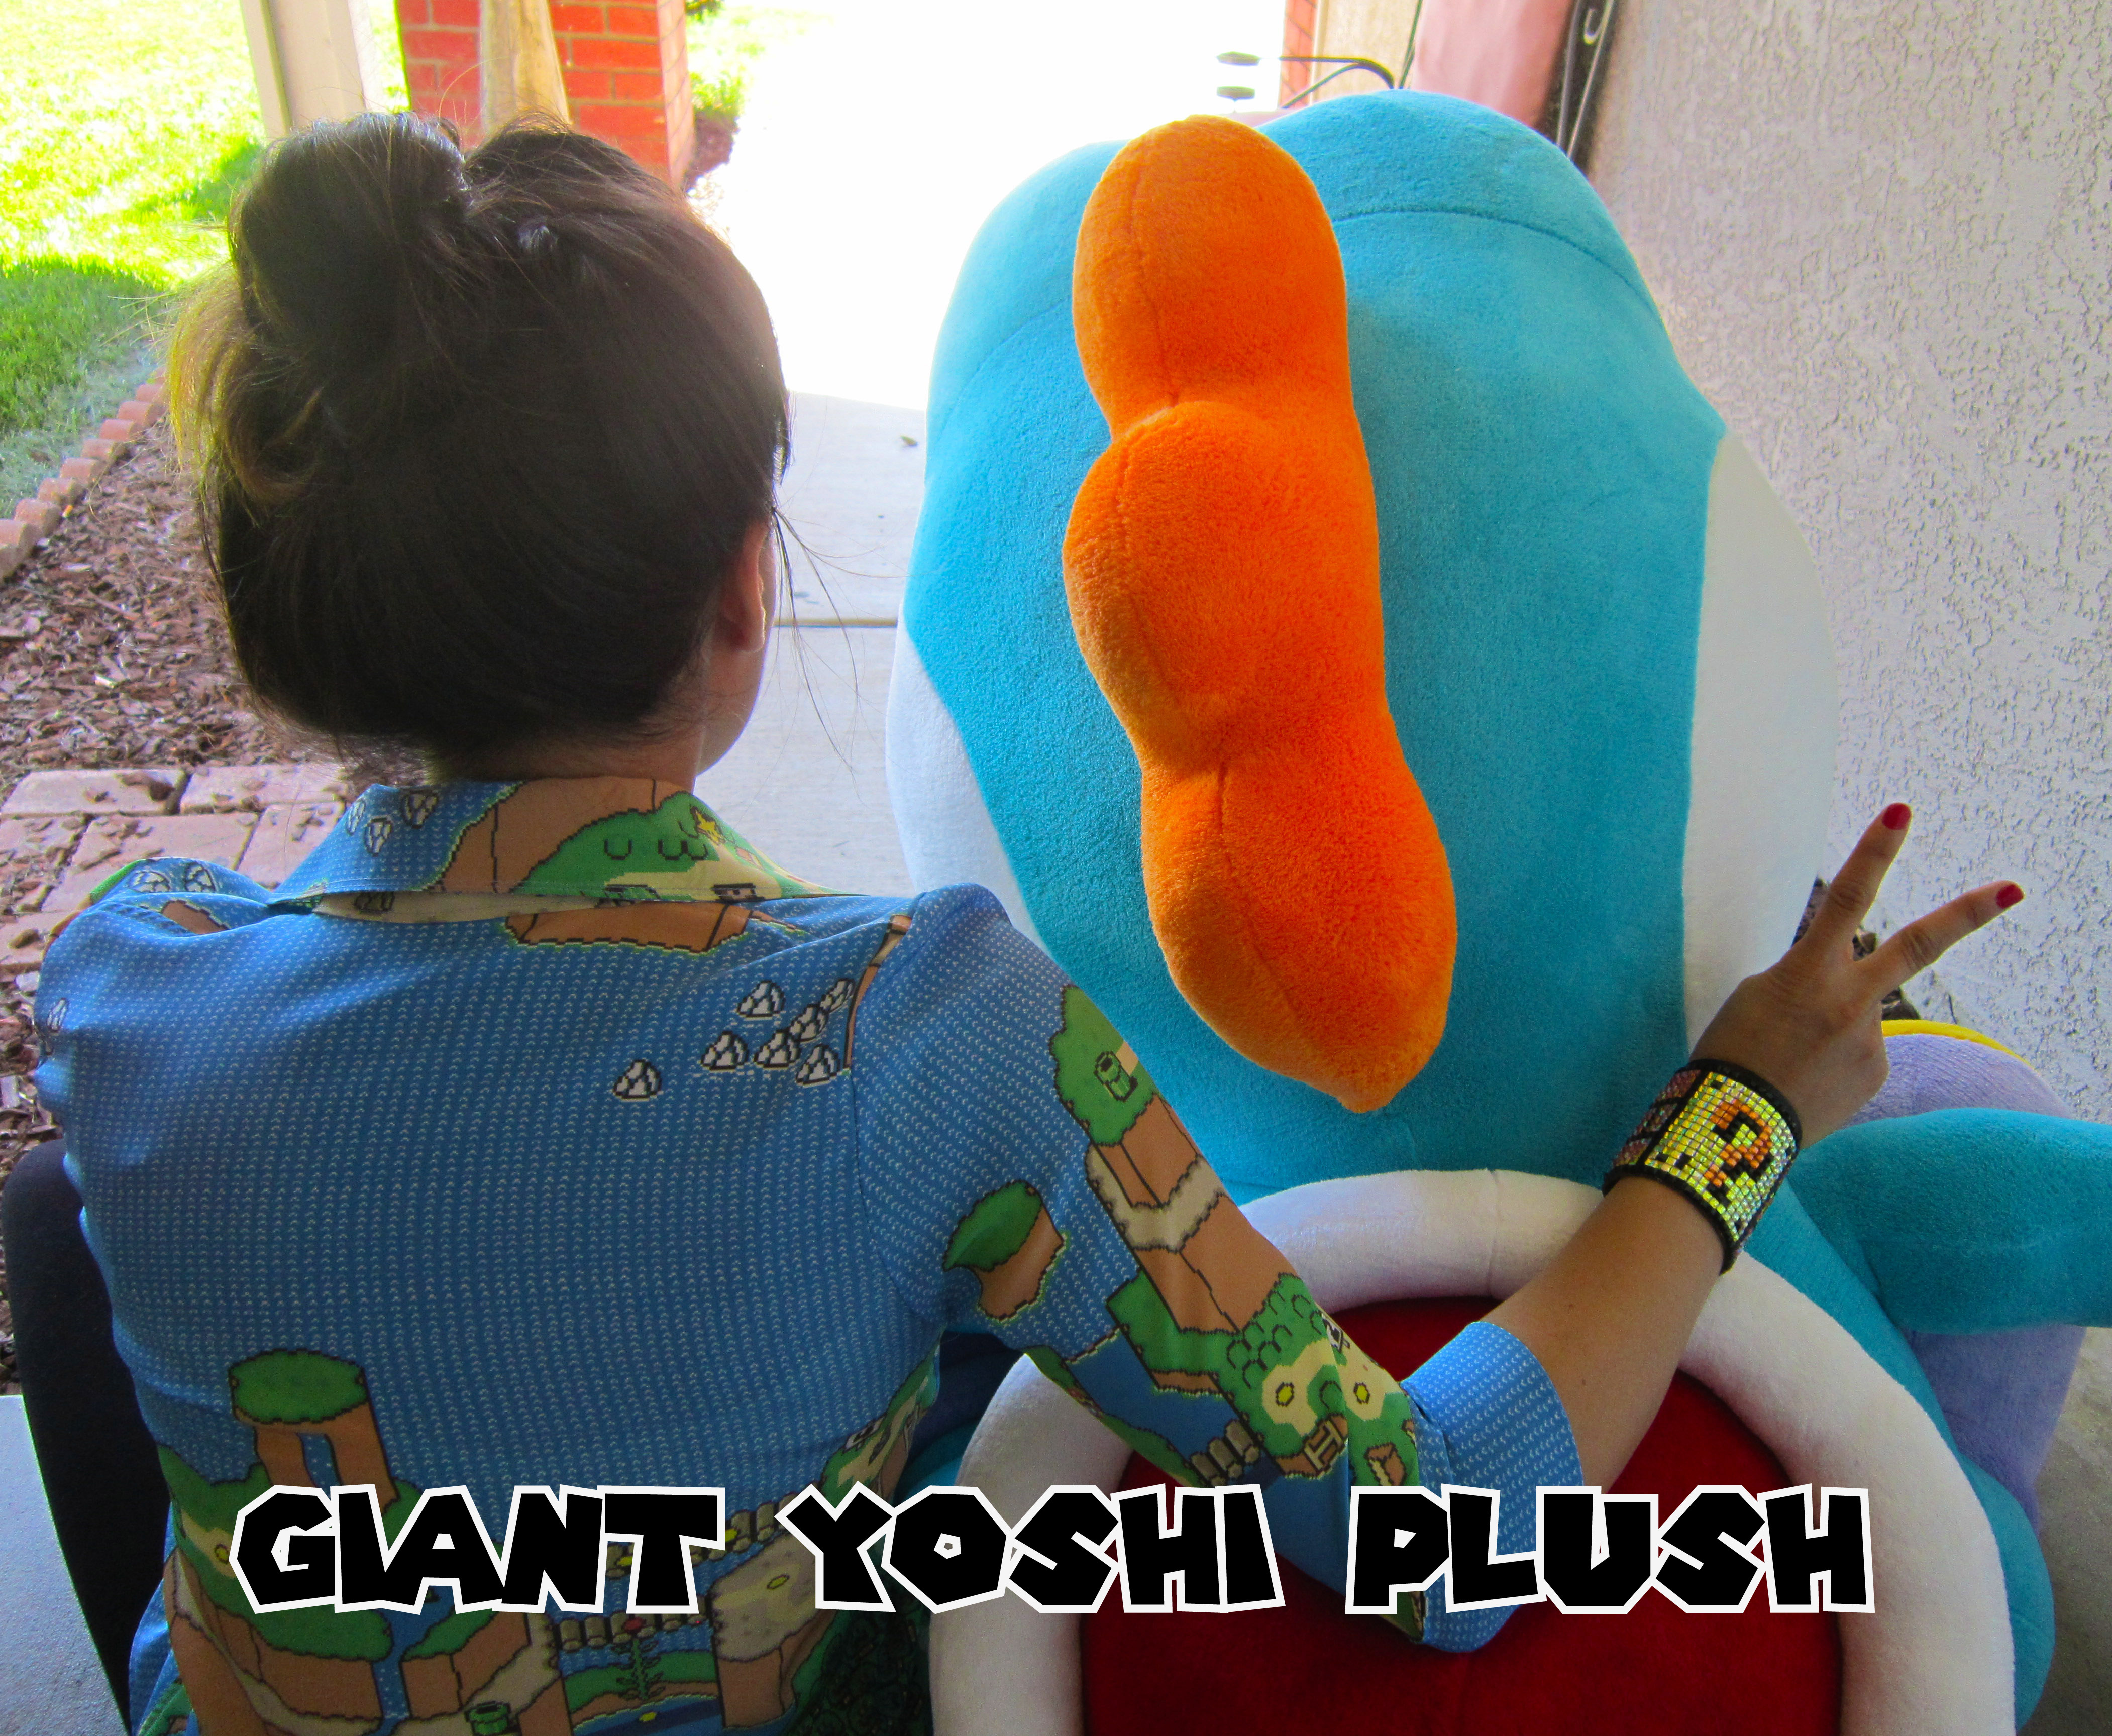 Picture of Giant Yoshi Plush